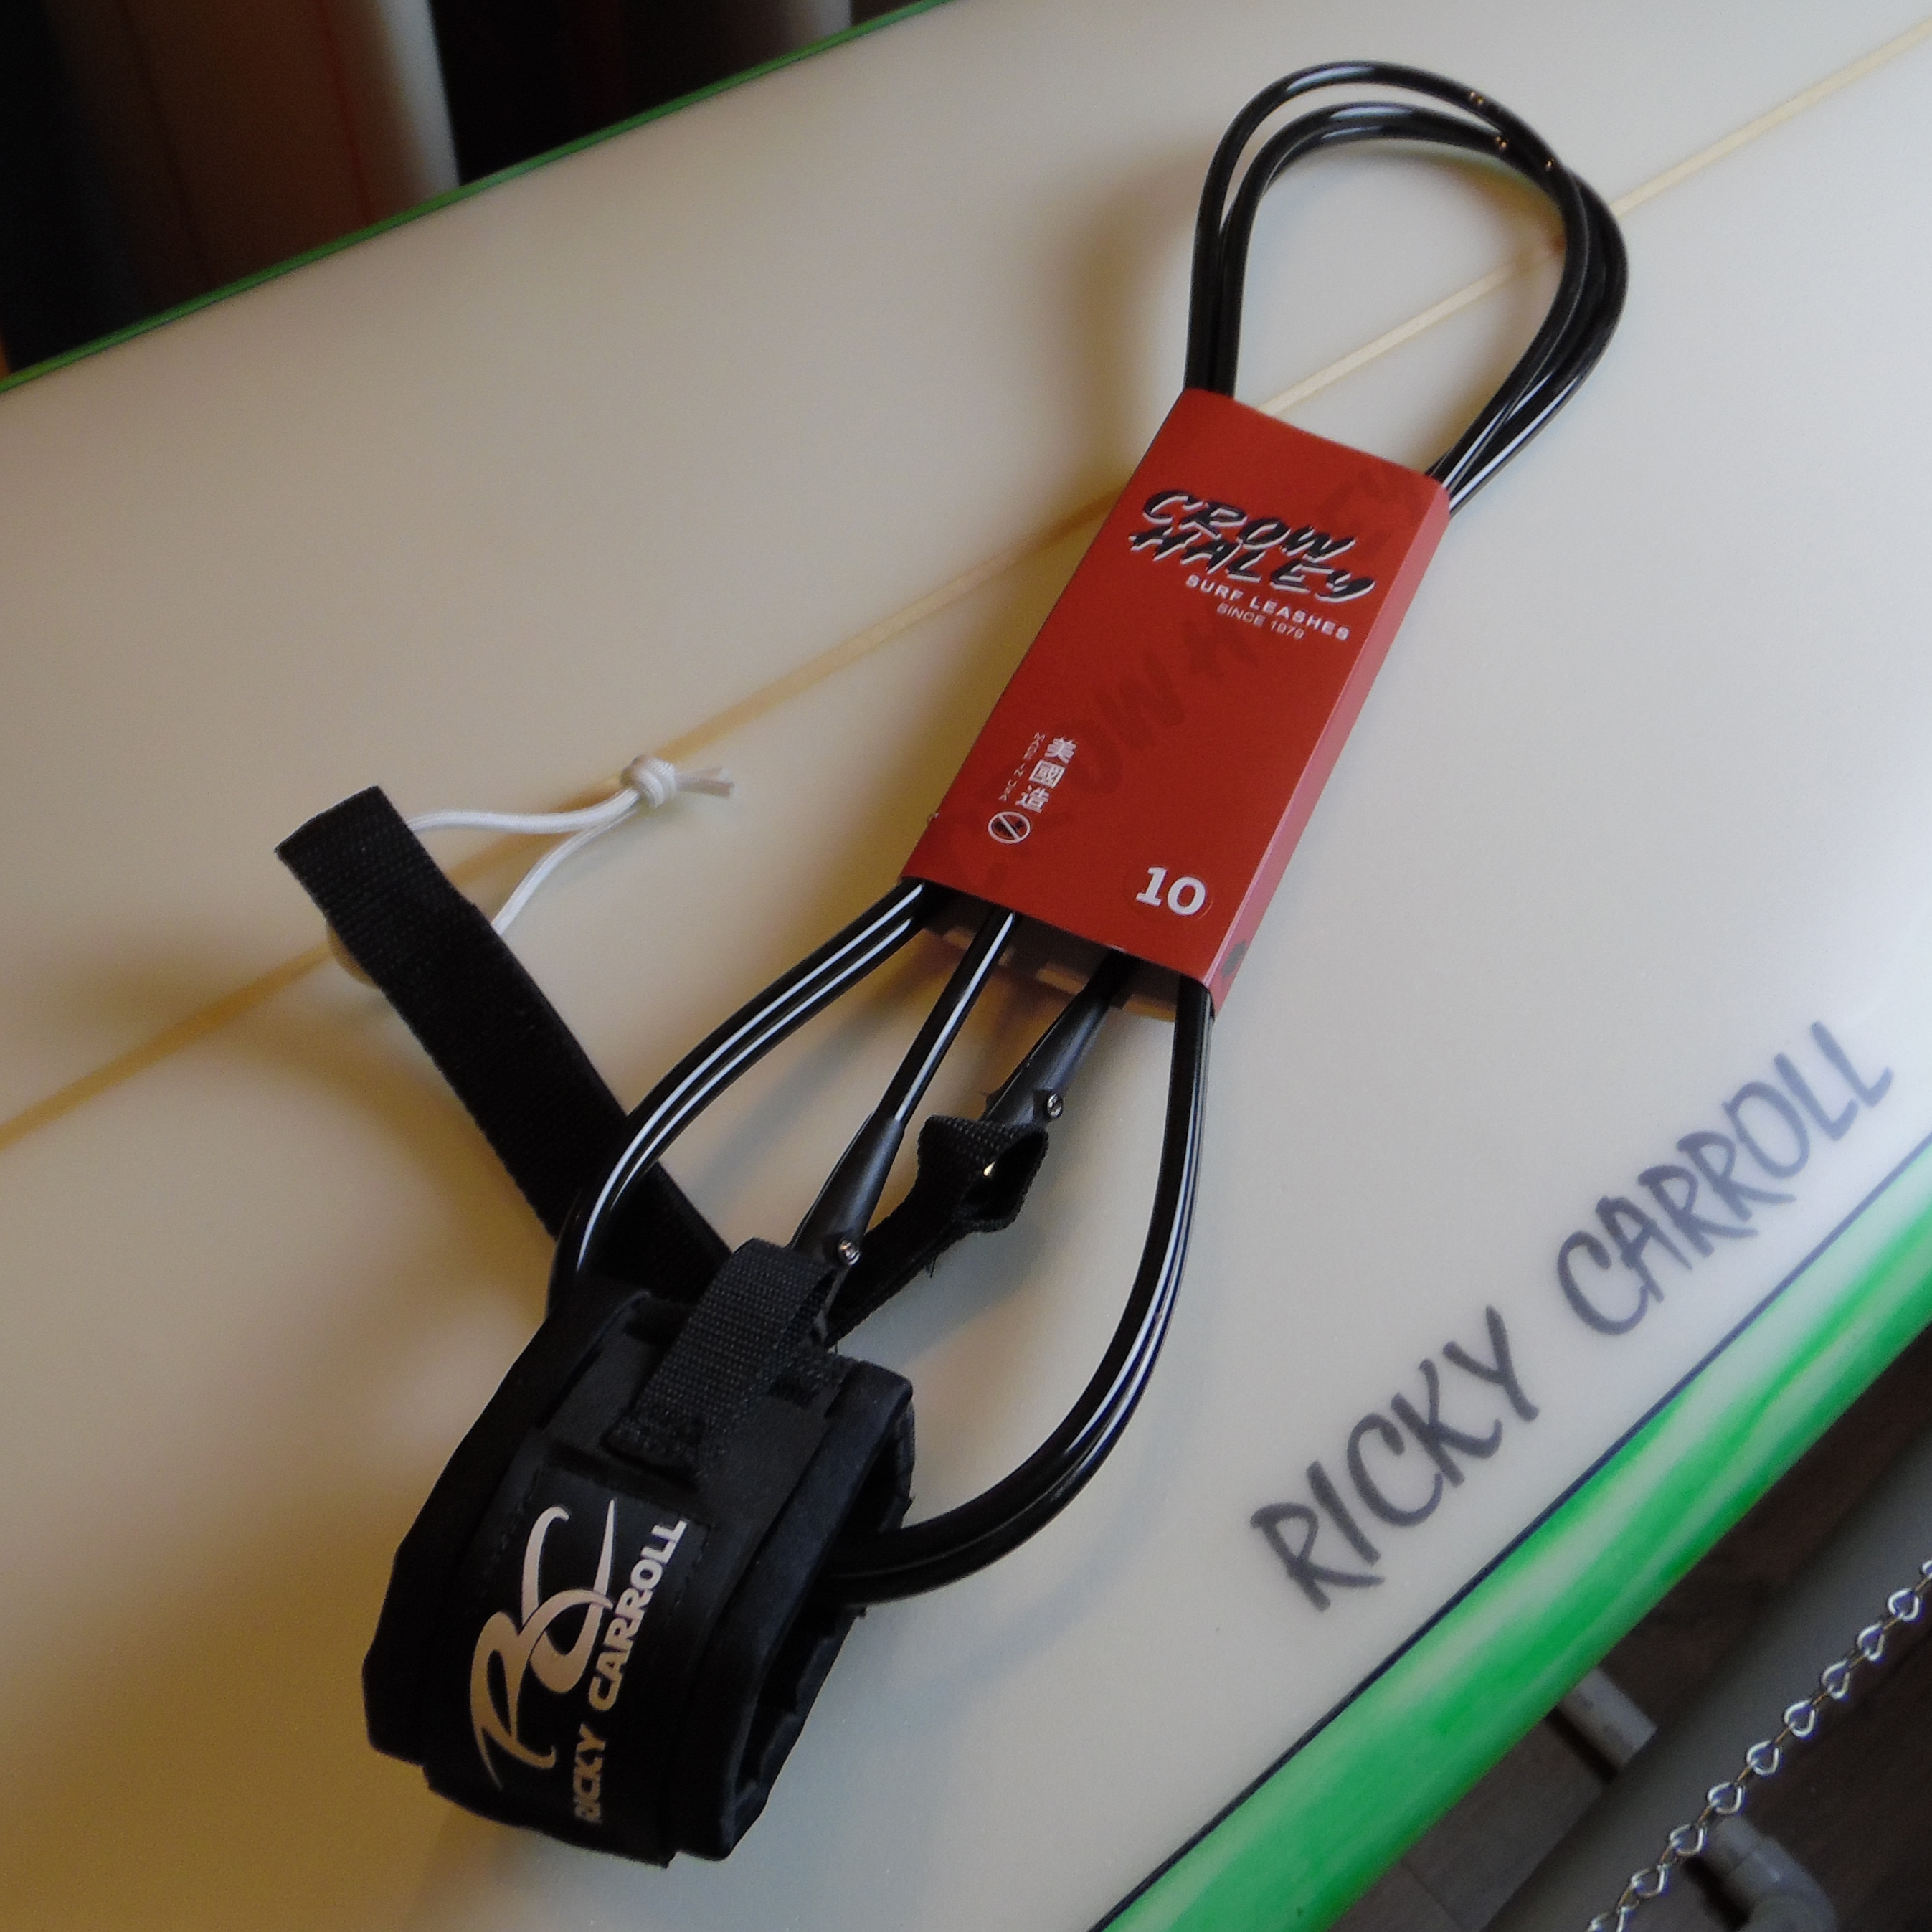 10' Ricky Carroll Standard Surfboard Leash